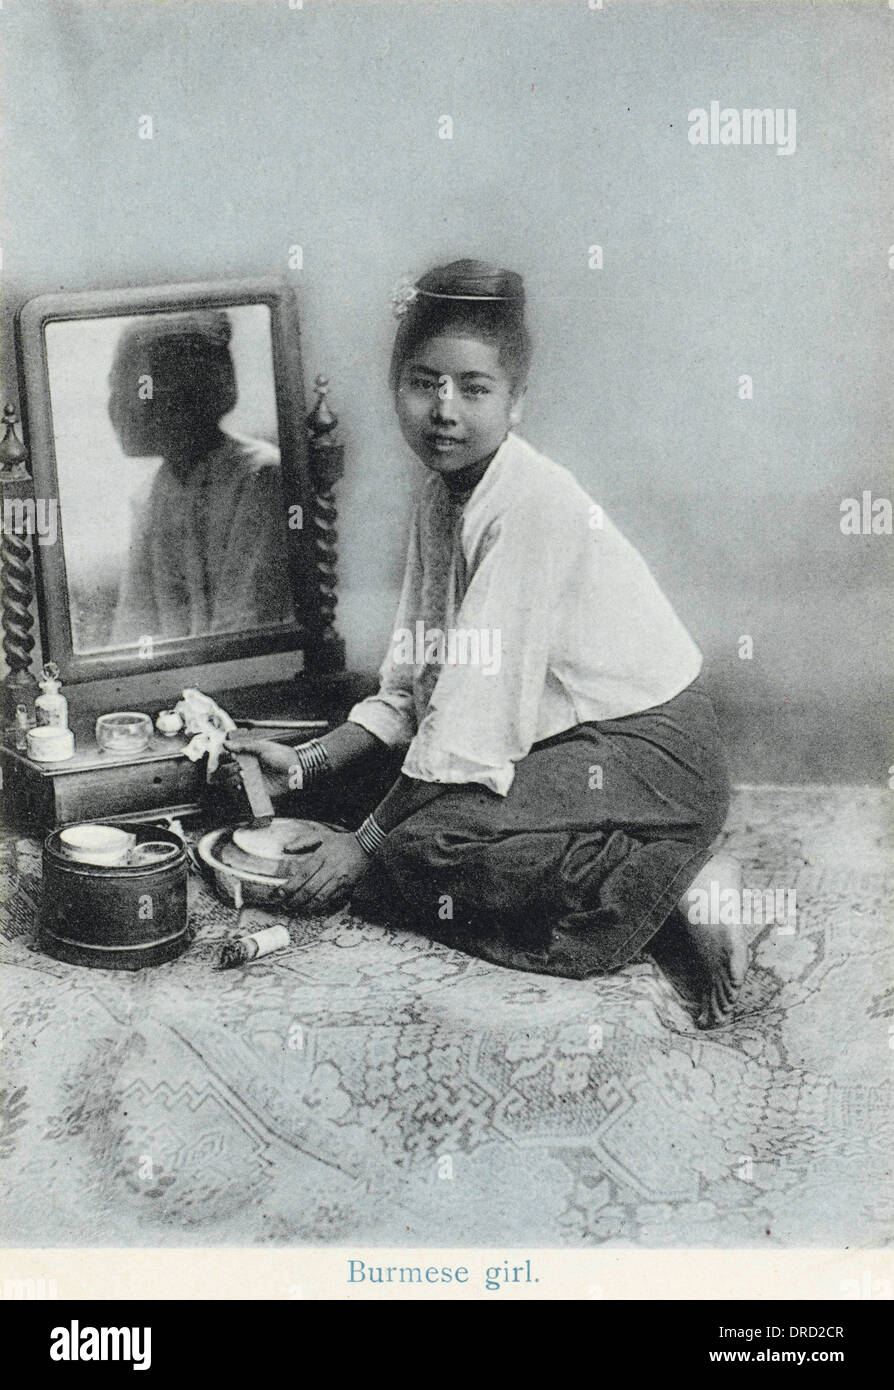 A Burmese girl preparing her make-up - Stock Image